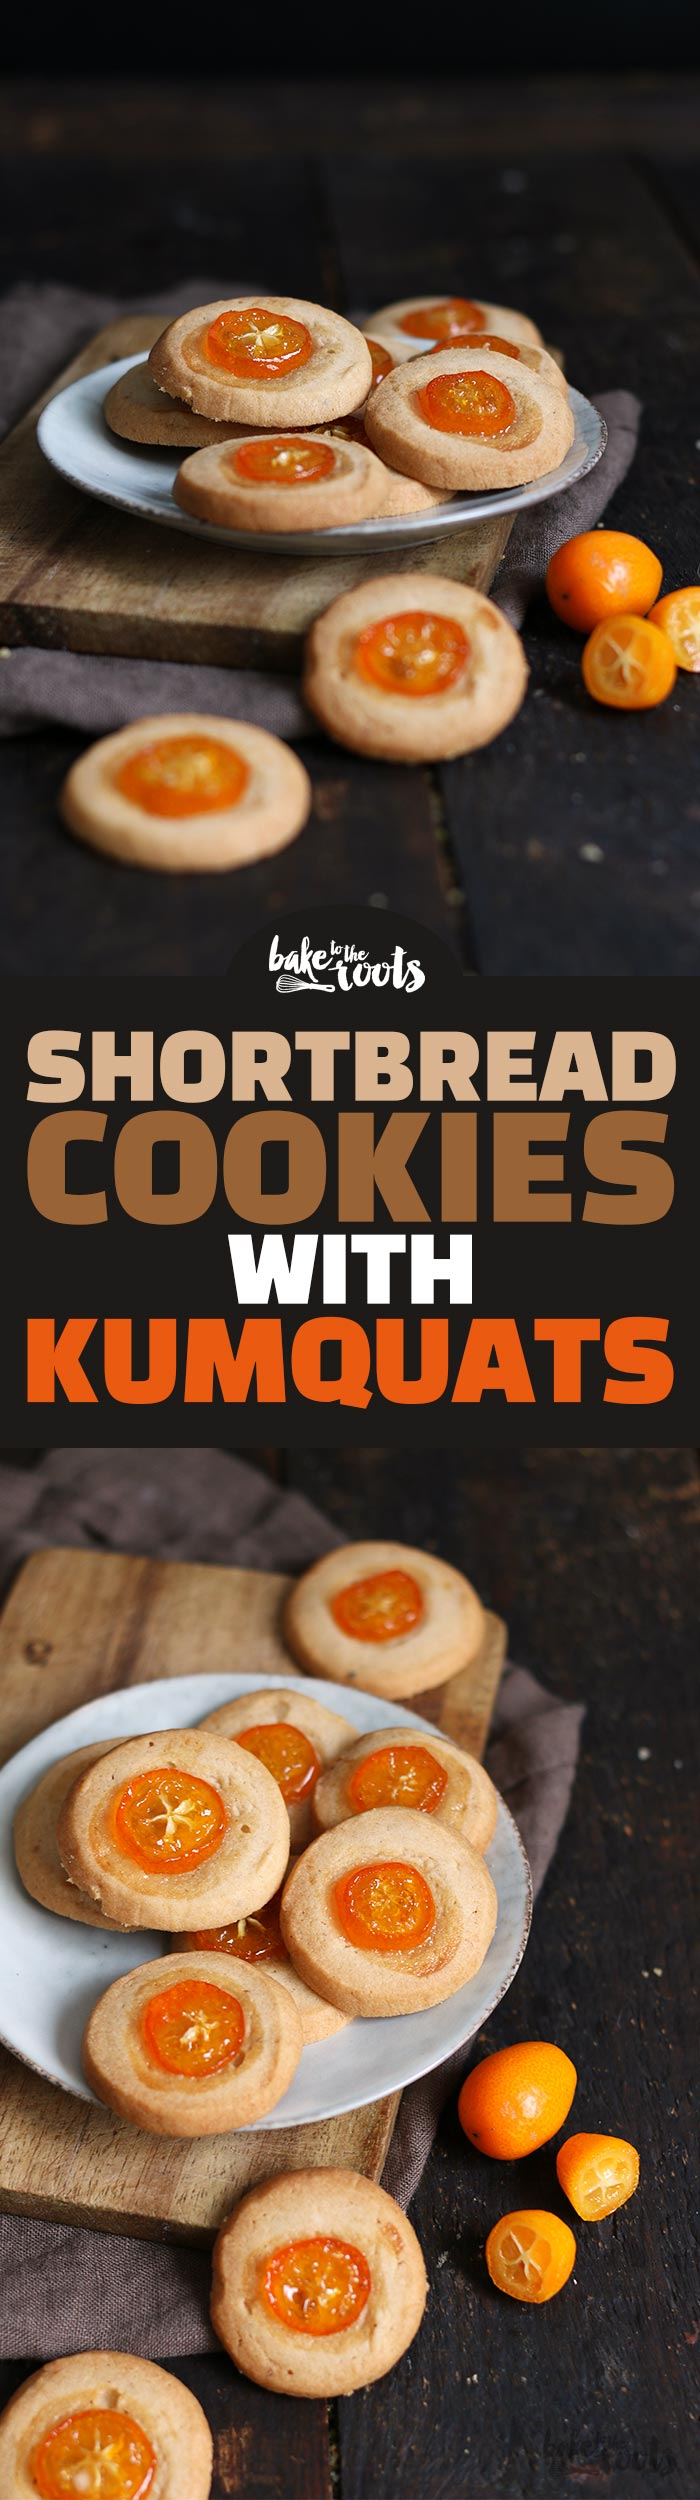 Shortbread Cookies with Kumquats | Bake to the roots